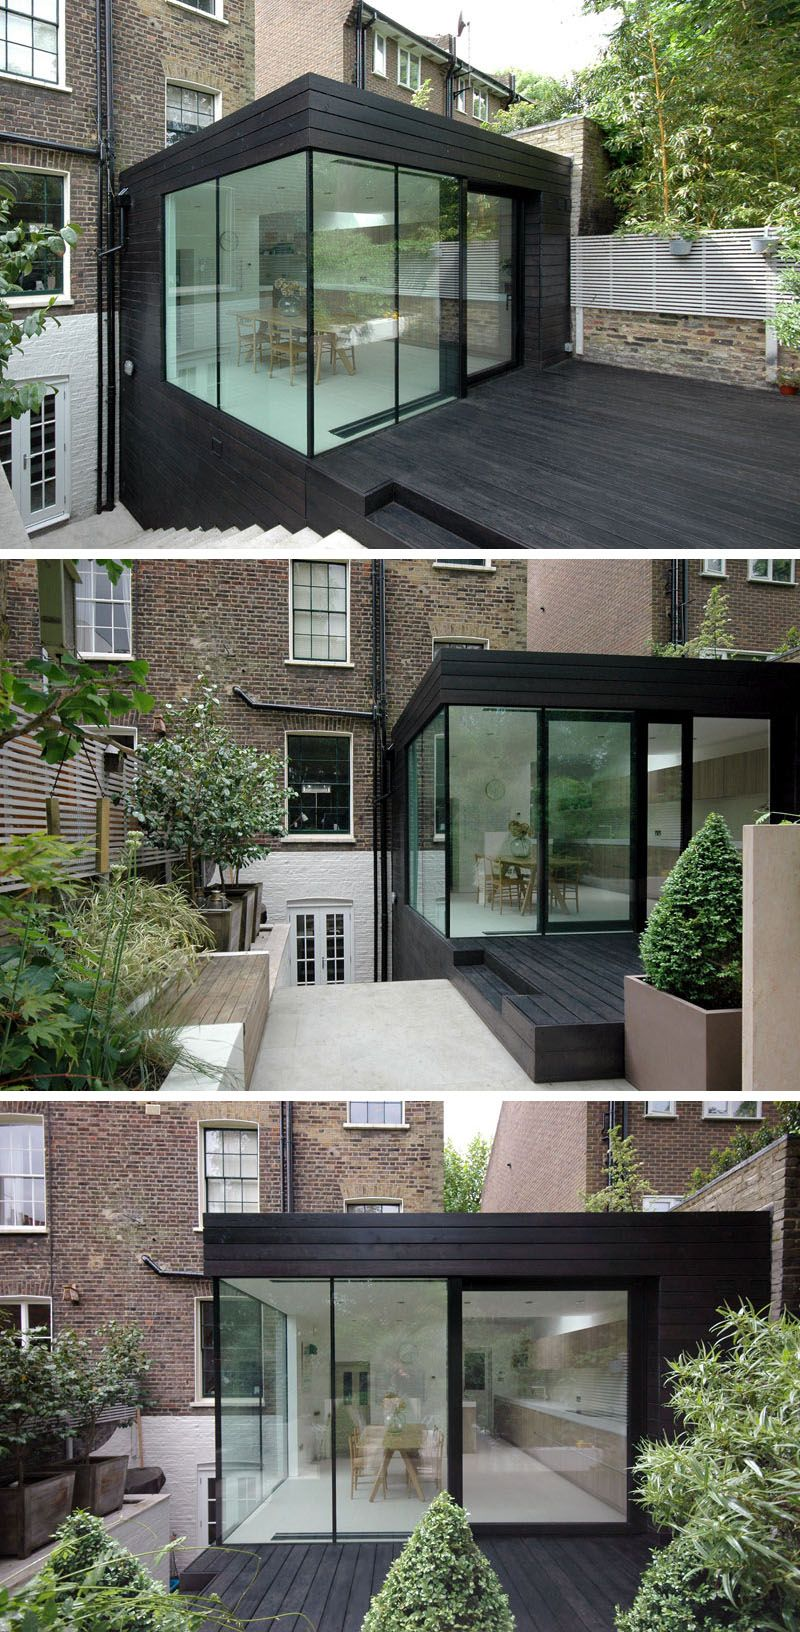 This House Extension In London Got A Contemporary Design ...